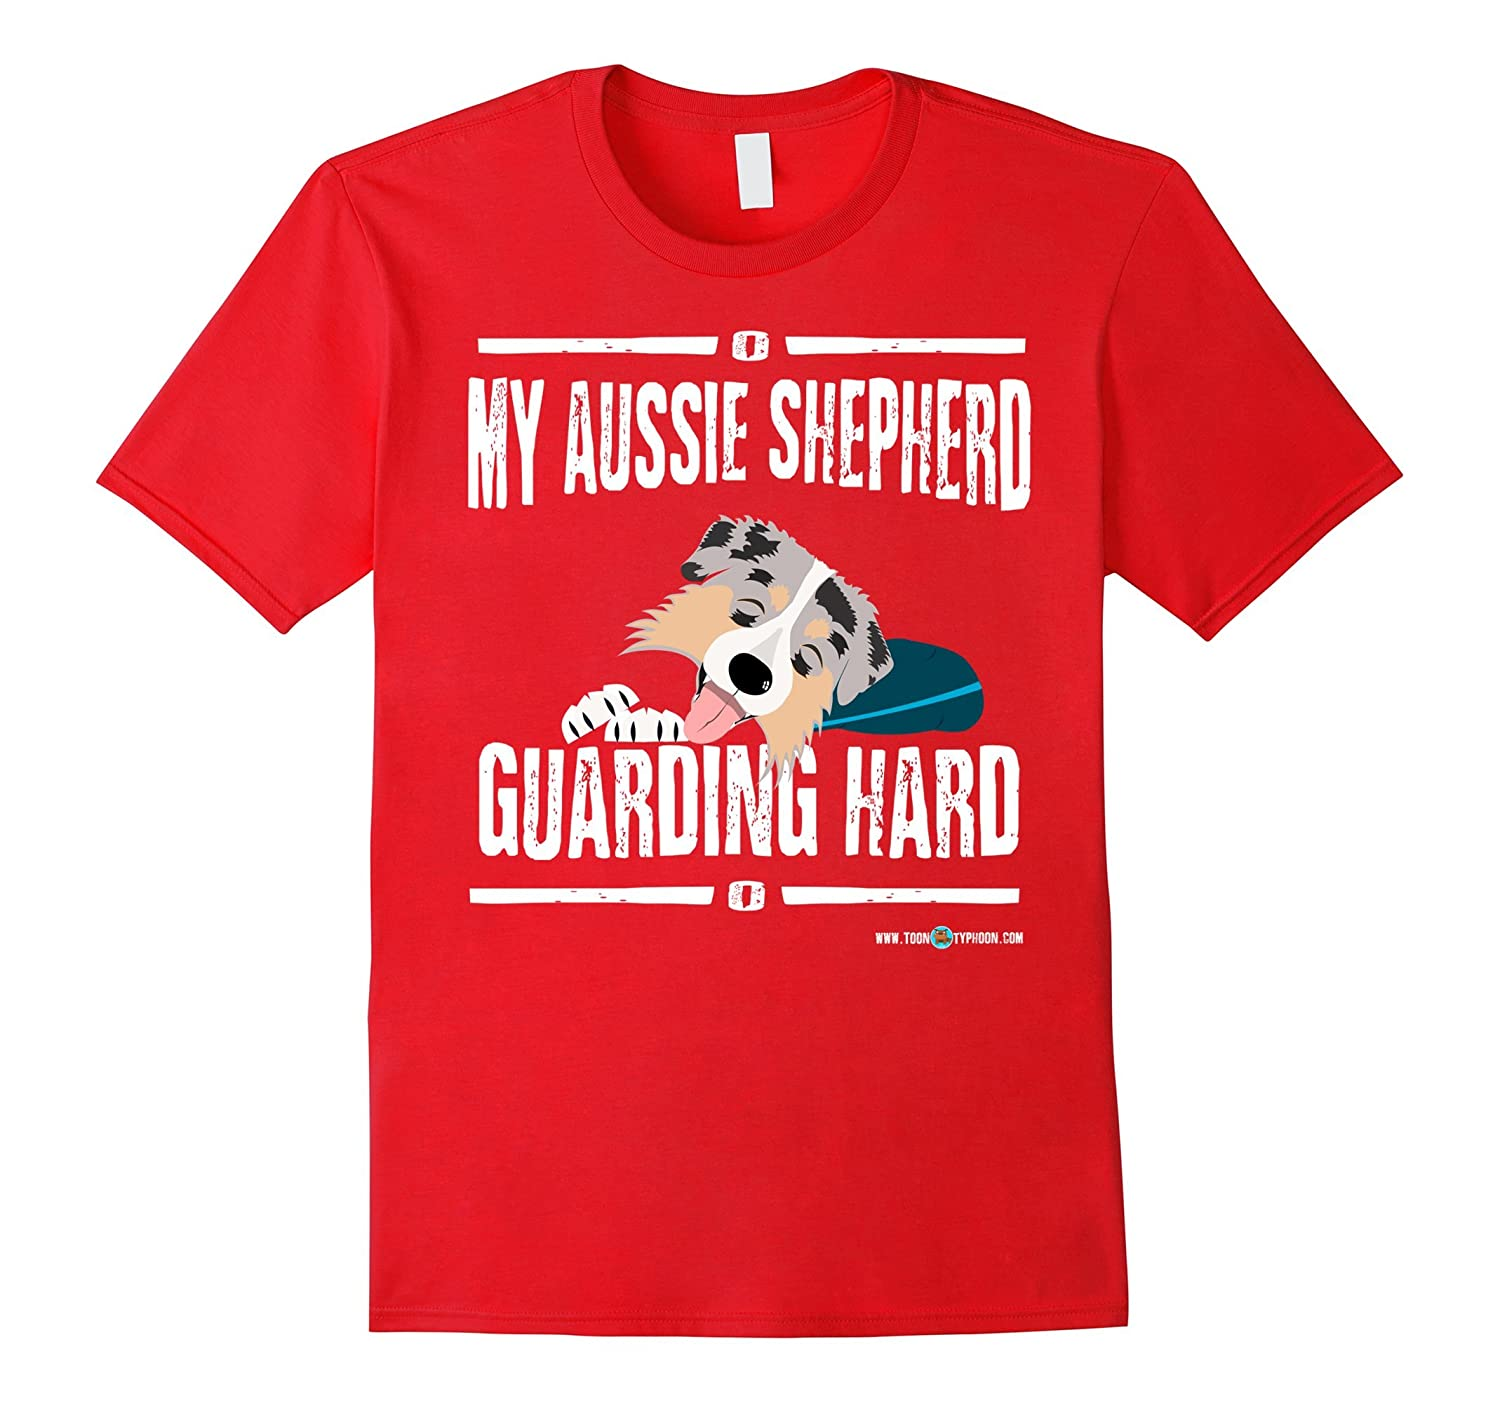 Aussie Shepherd shirt | My Aussie Shepherd Guarding Hard-Art